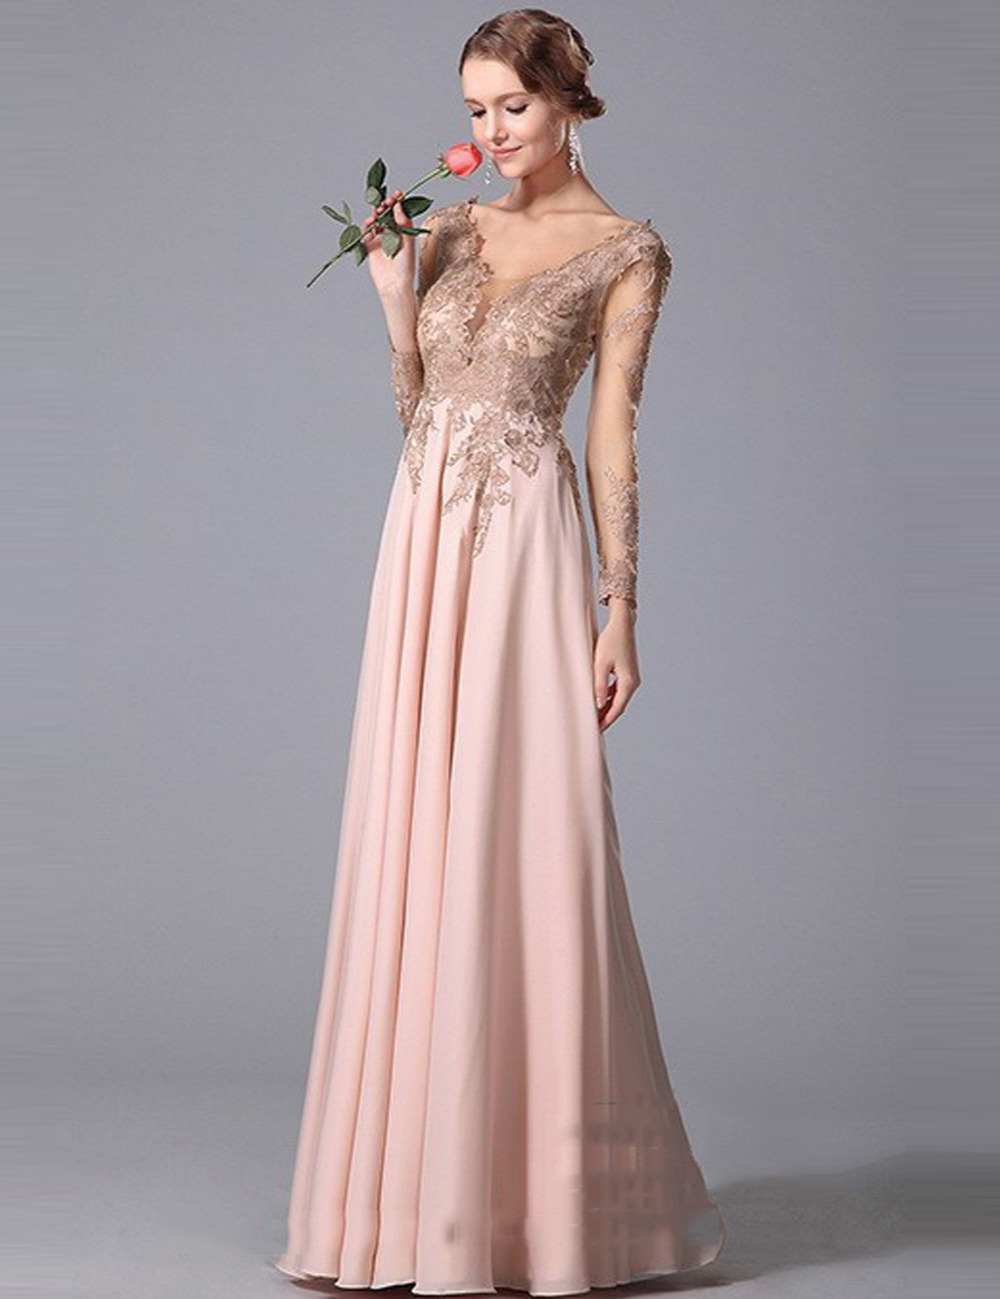 Blush Dresses with Sleeves   Dress images